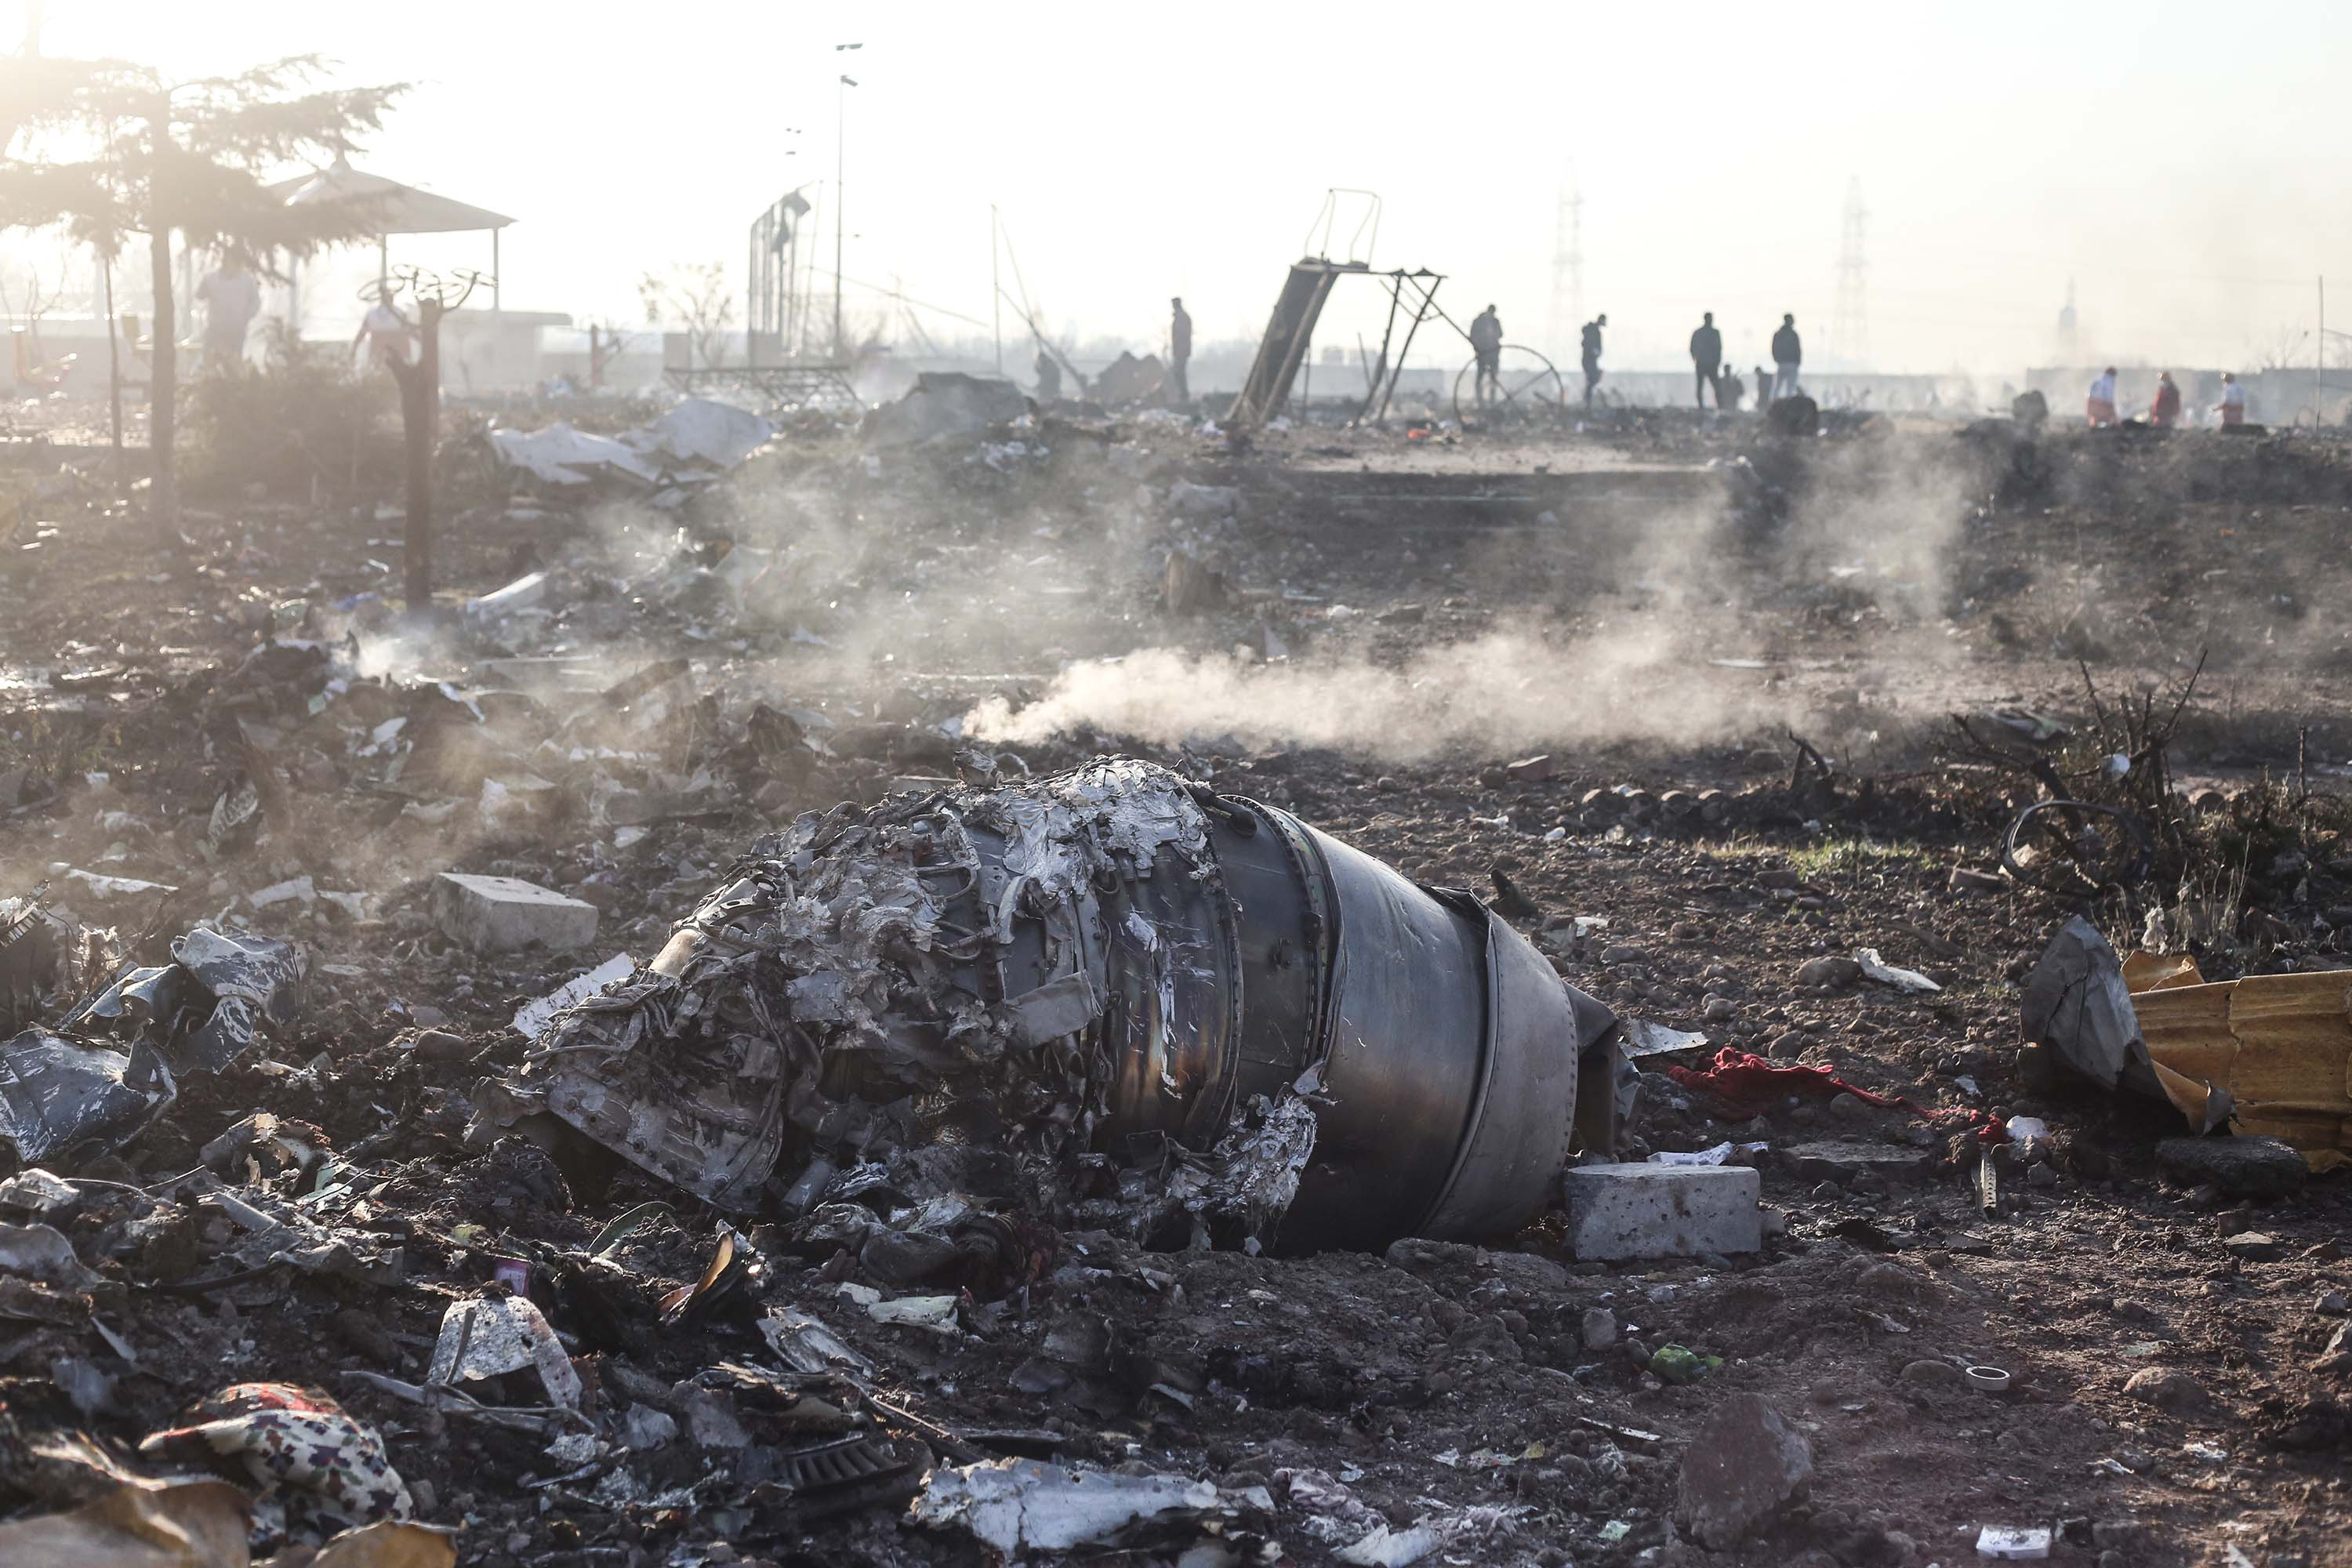 Wreckage from the aircraft lay at the scene of the crash on Wednesday.